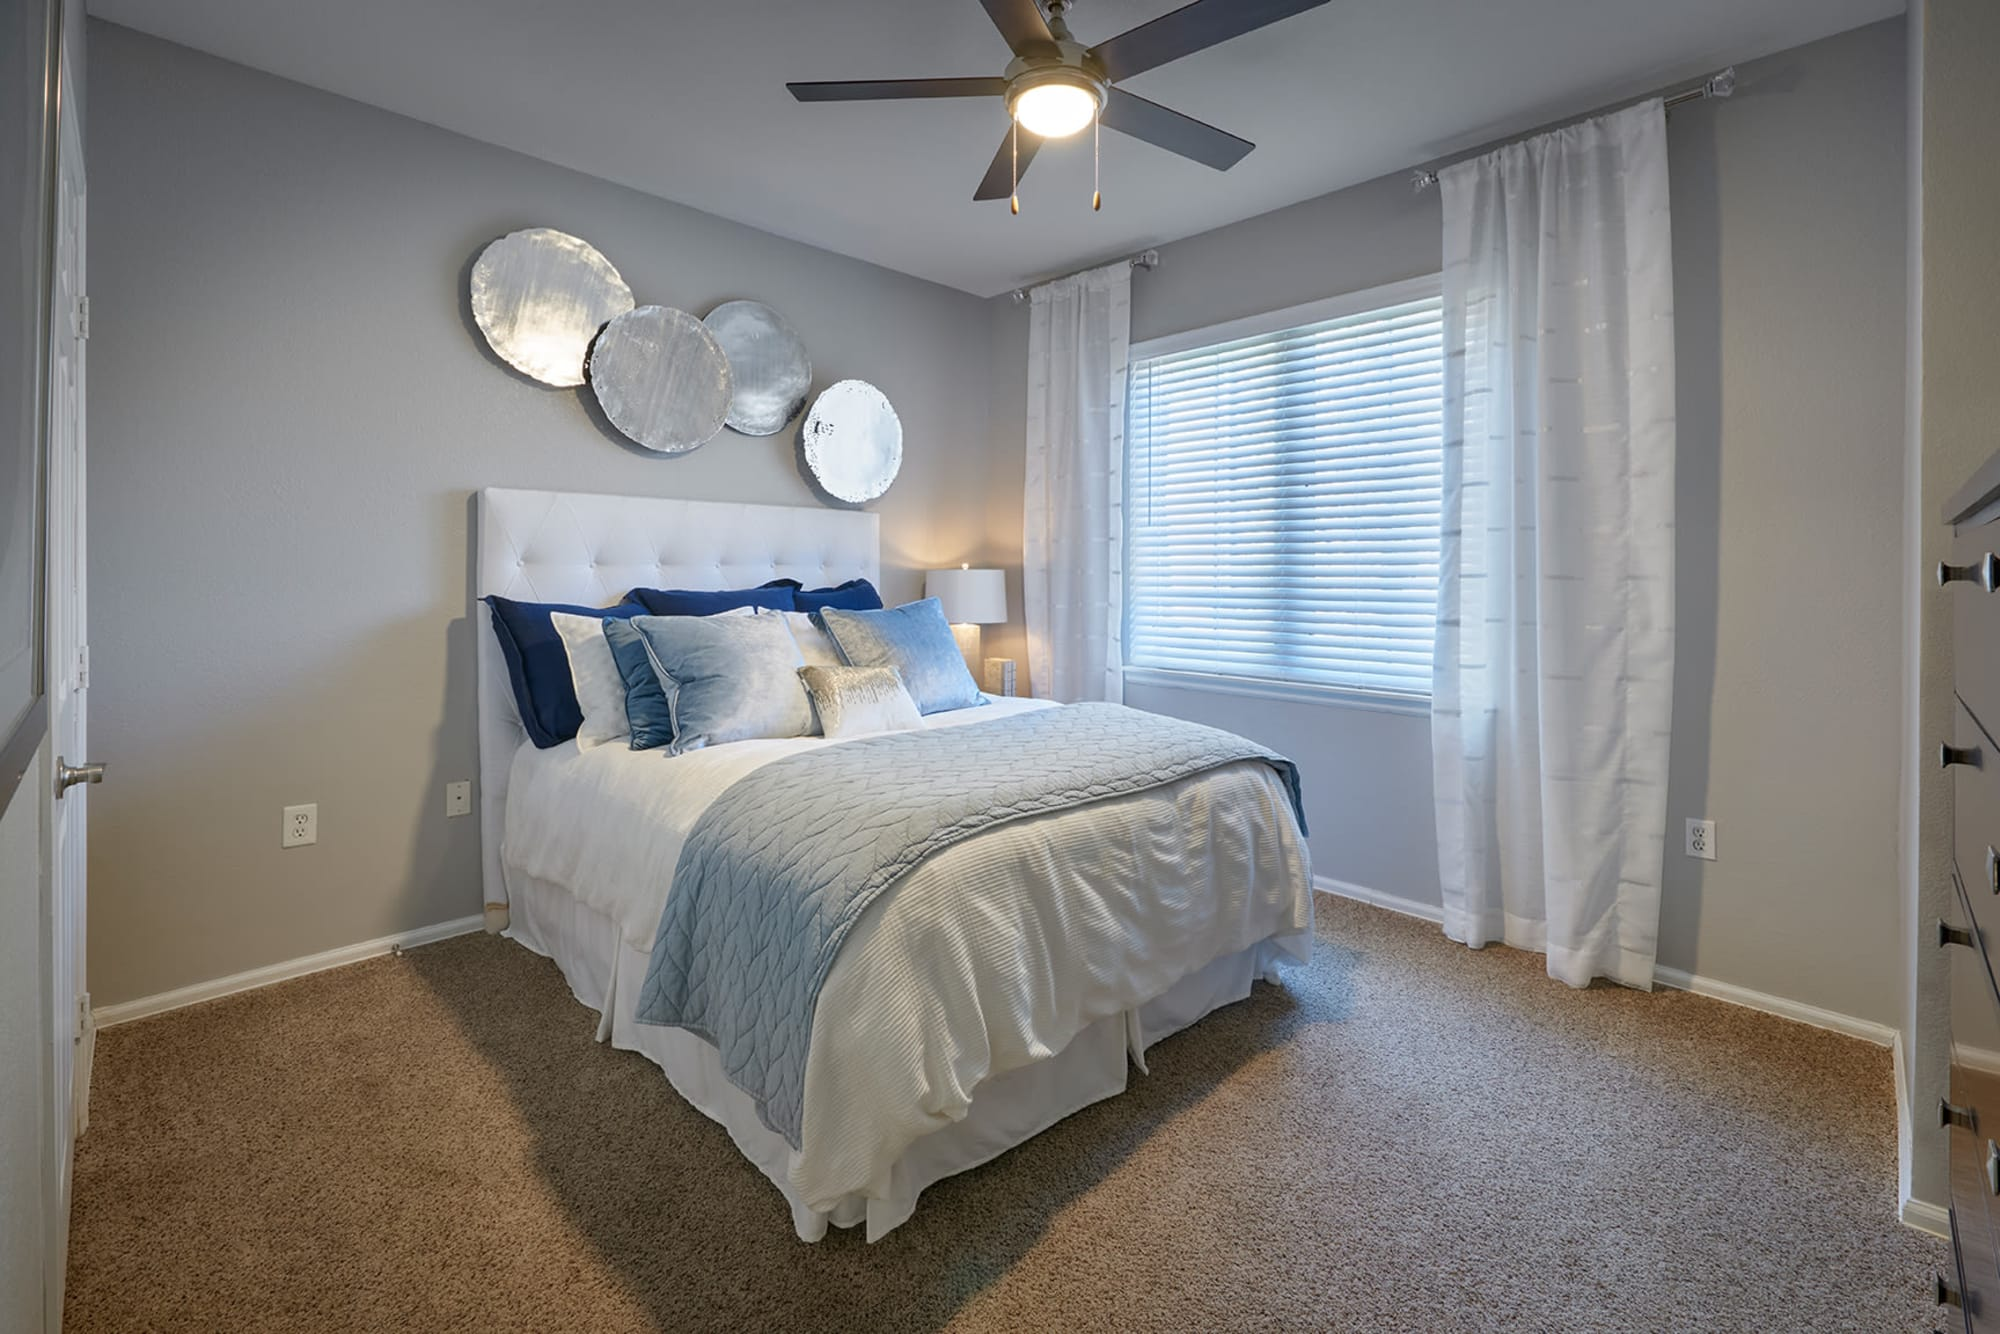 A furnished apartment bedroom at Crestone Apartments in Aurora, Colorado